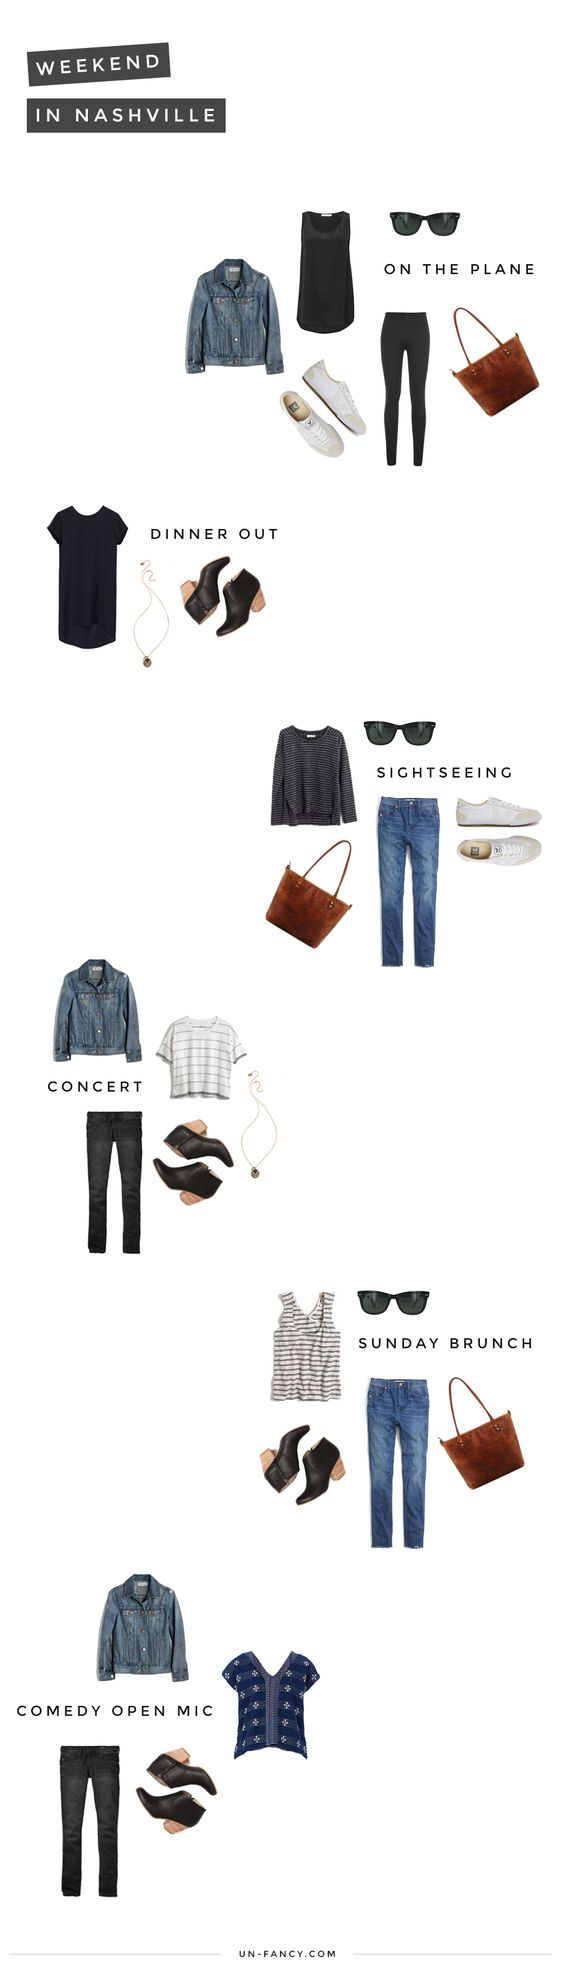 I have this fantasy where I have a carry-on suitcase sitting in my closet, packed and ready to go at all times, filled with perfect yet minimal outfits that will work for any destination. What can …